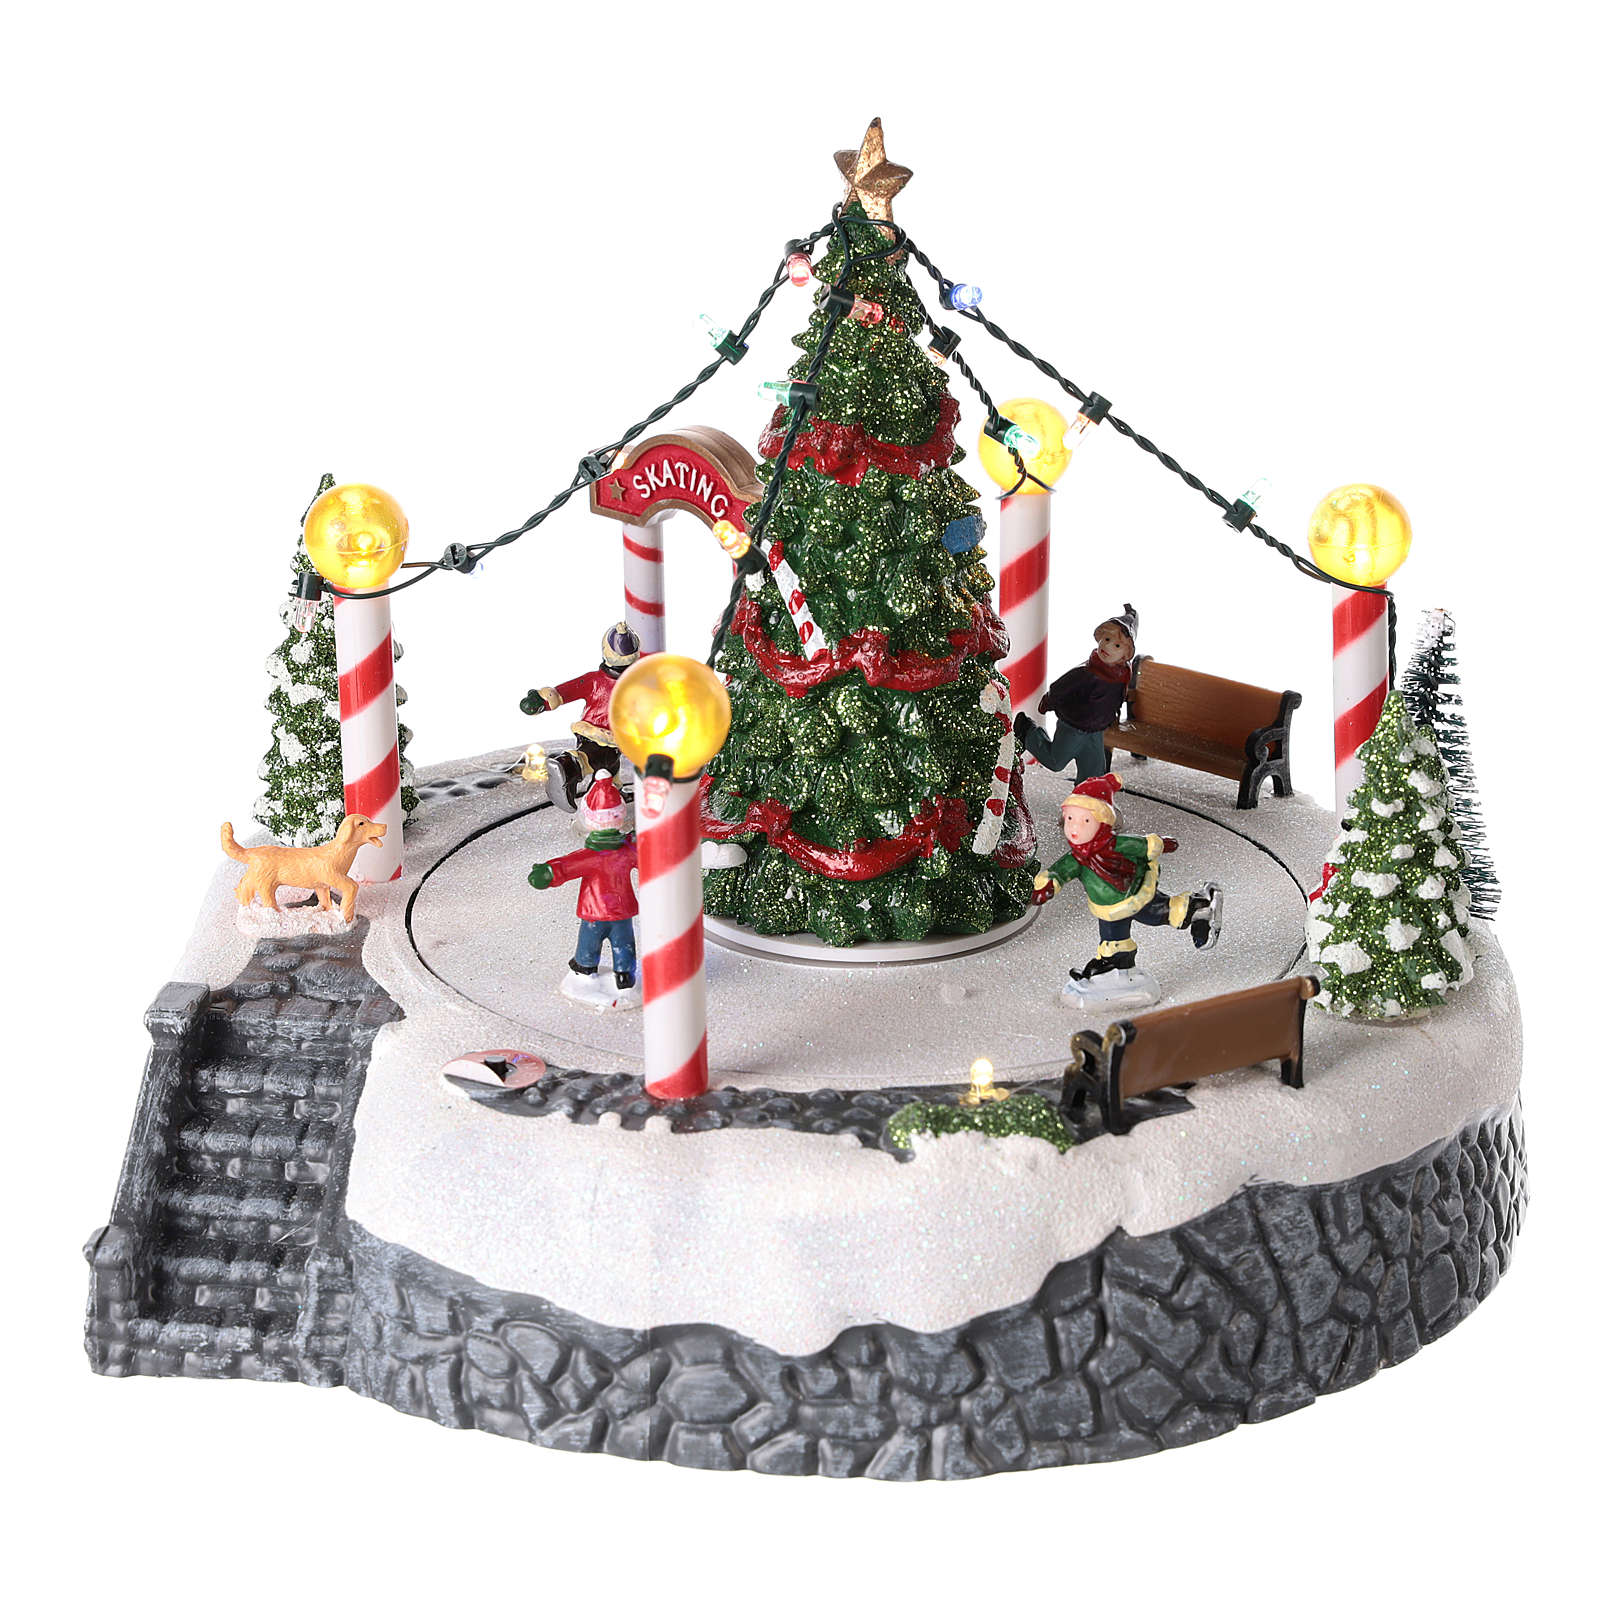 Round village with central tree and revolving skating rink 20x22 cm 3